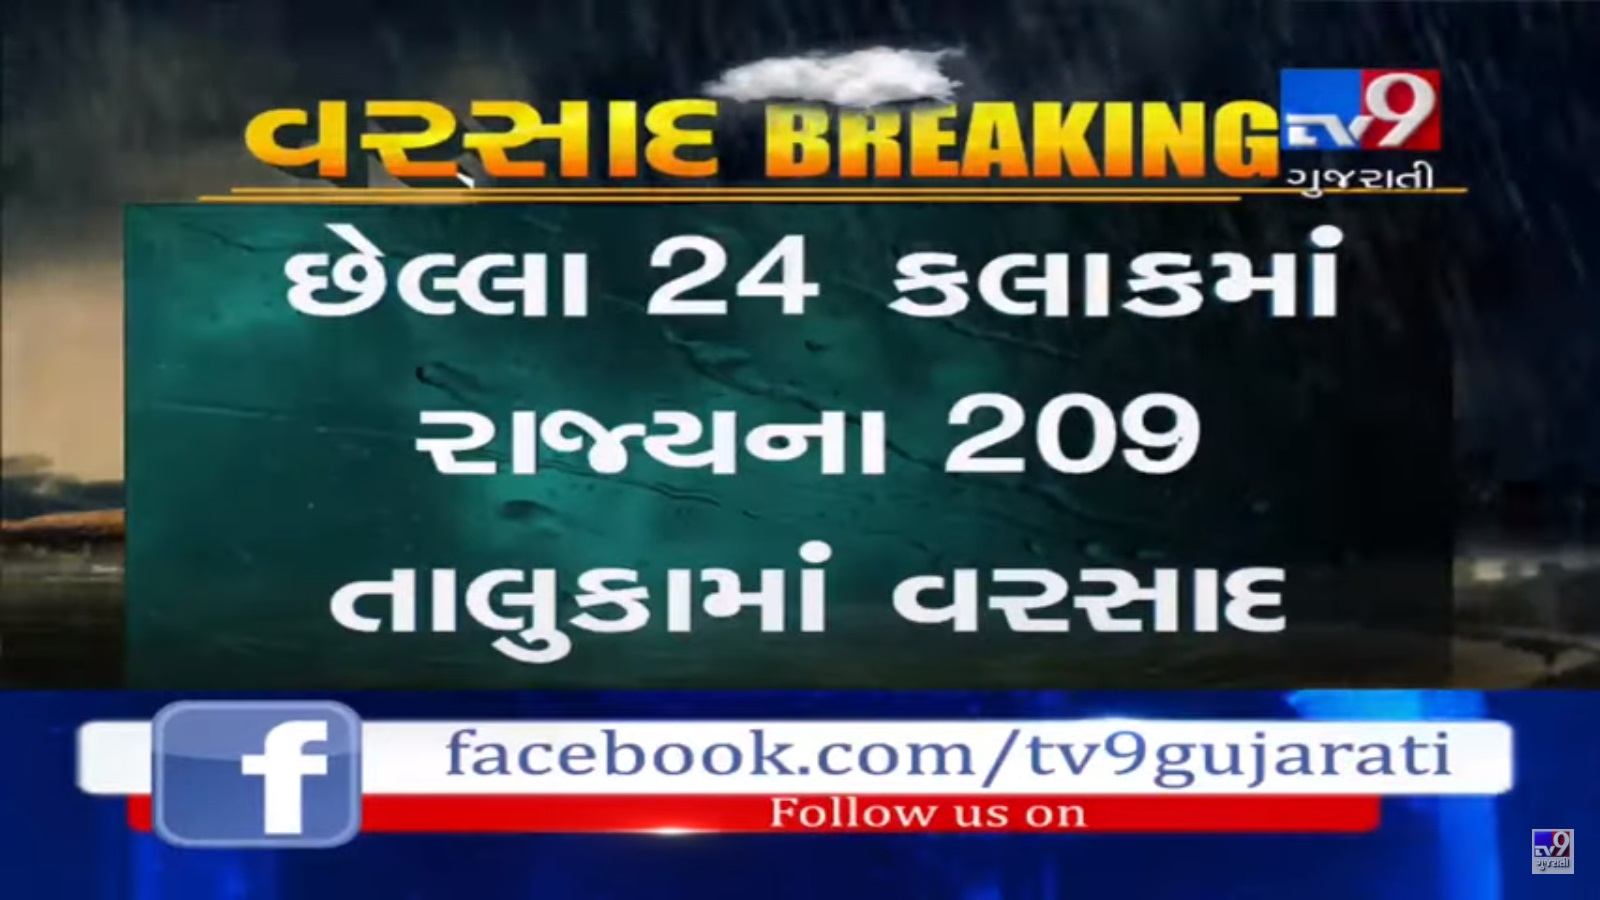 209 taluka received rain in last 24 hours